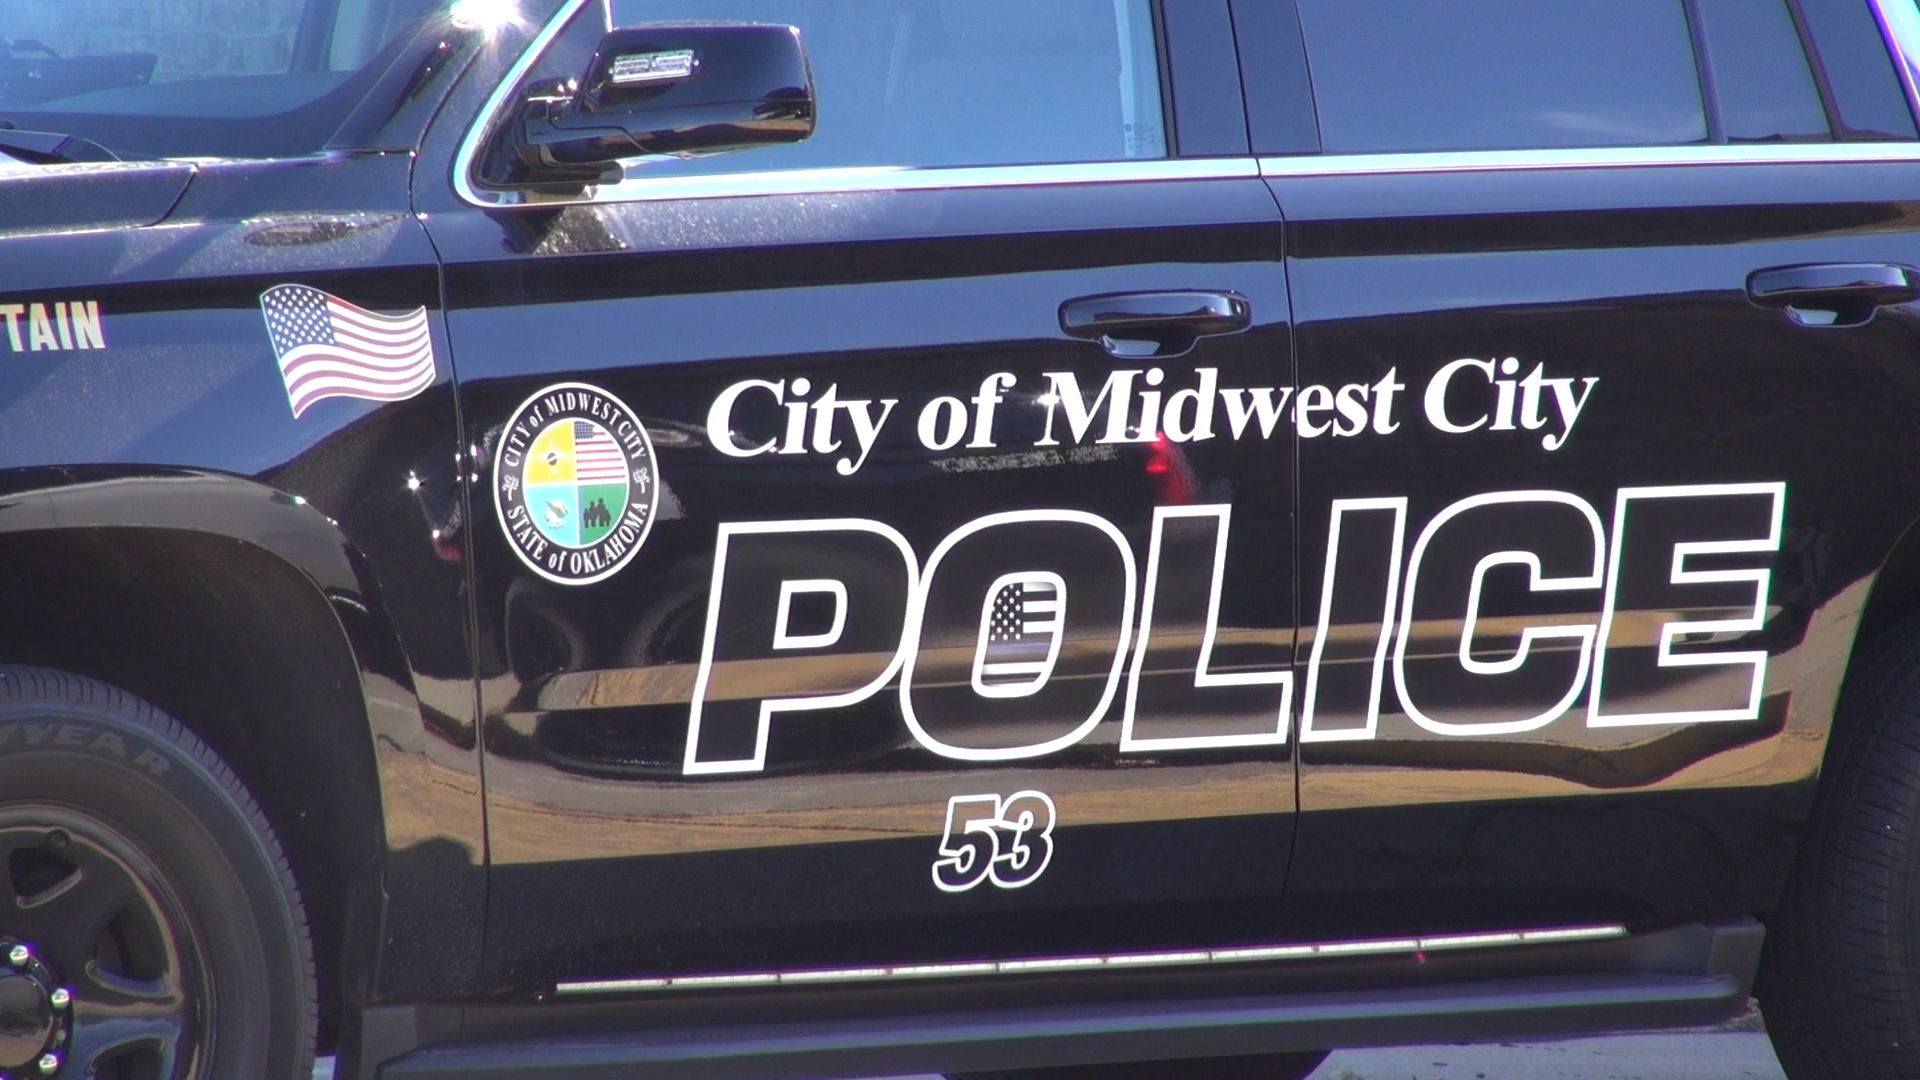 Midwest City police car